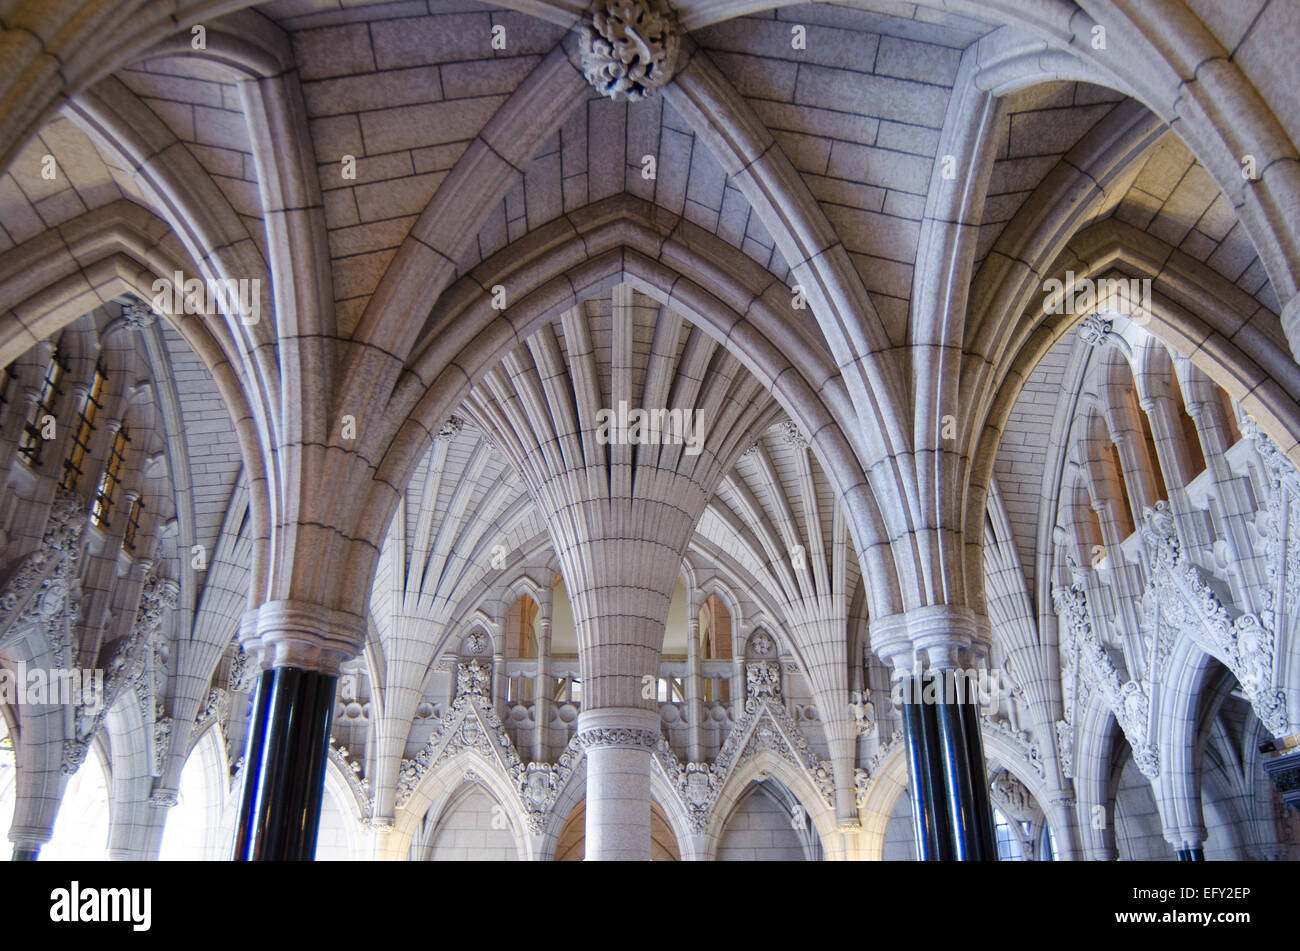 Gothic Revival Interior the ornate gothic revival interior of the parliament of canada in